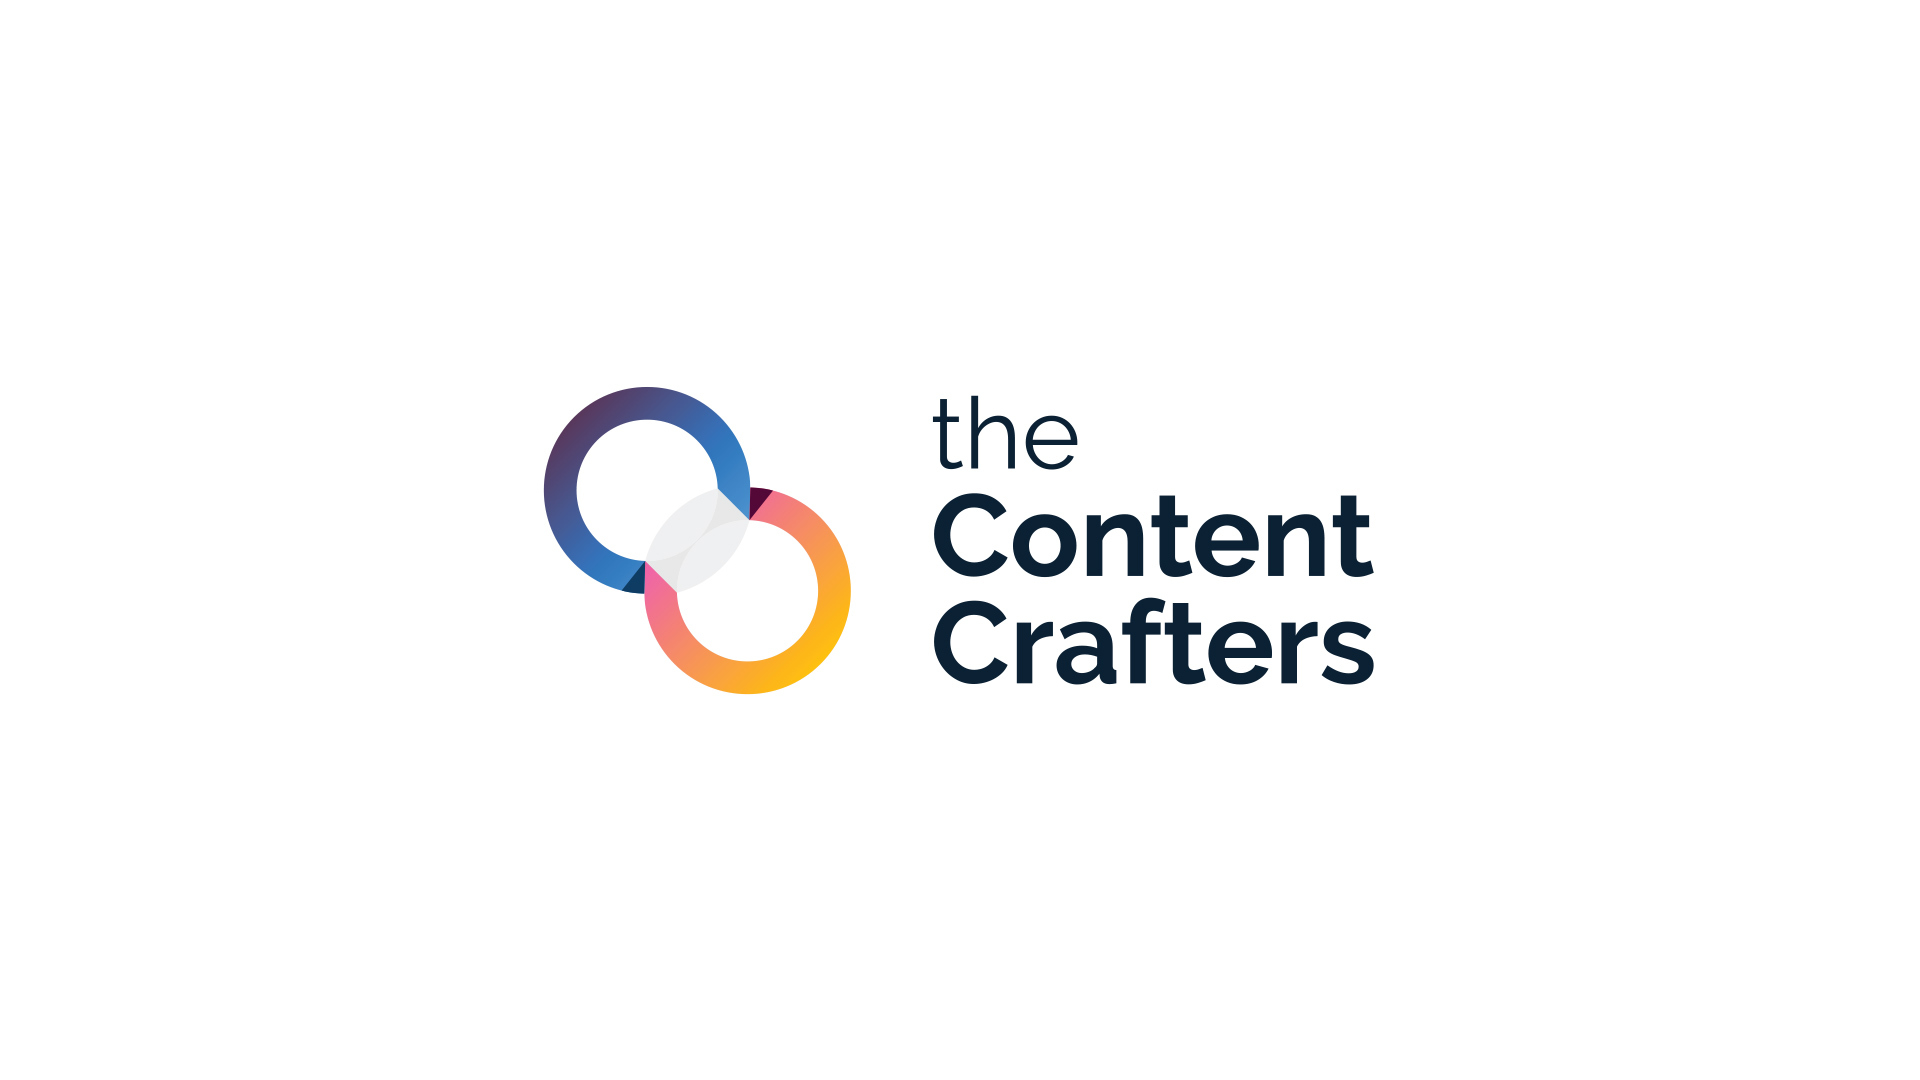 The Content Crafters Logo Image by Michiel Tramper